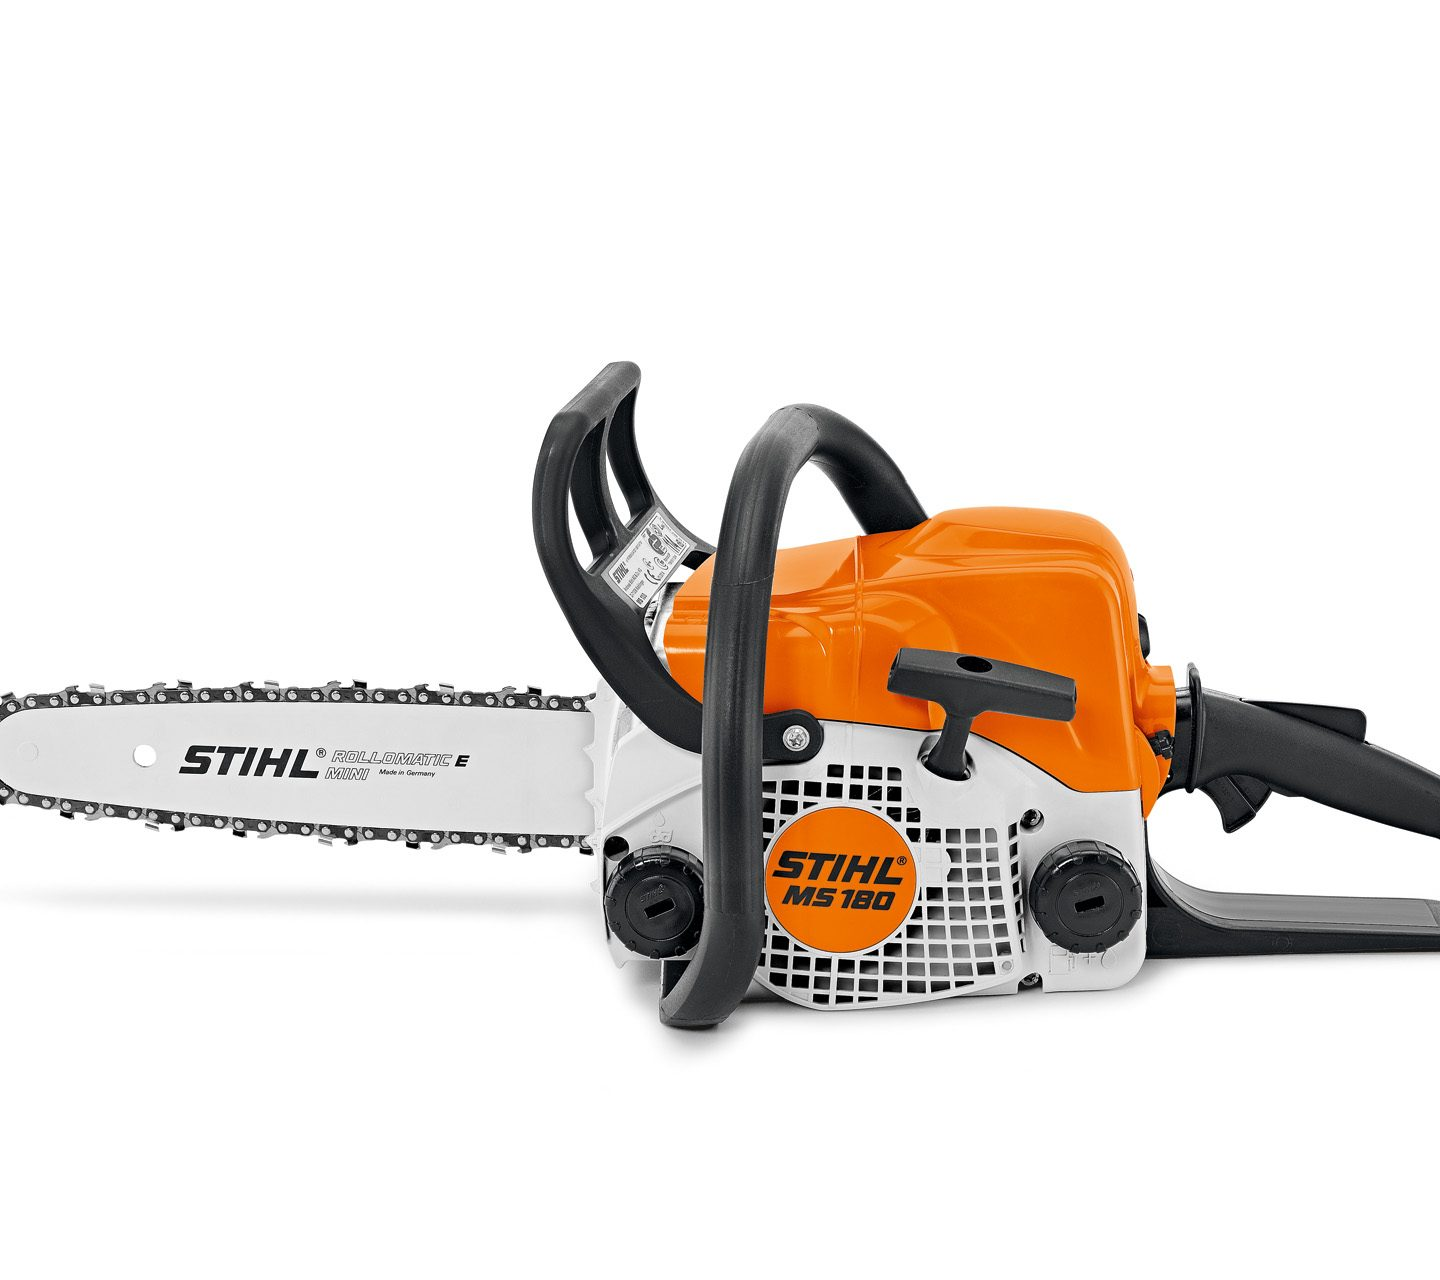 MS 180 - 1.4 KW/1.9 HP DOMESTIC PETROL CHAINSAW